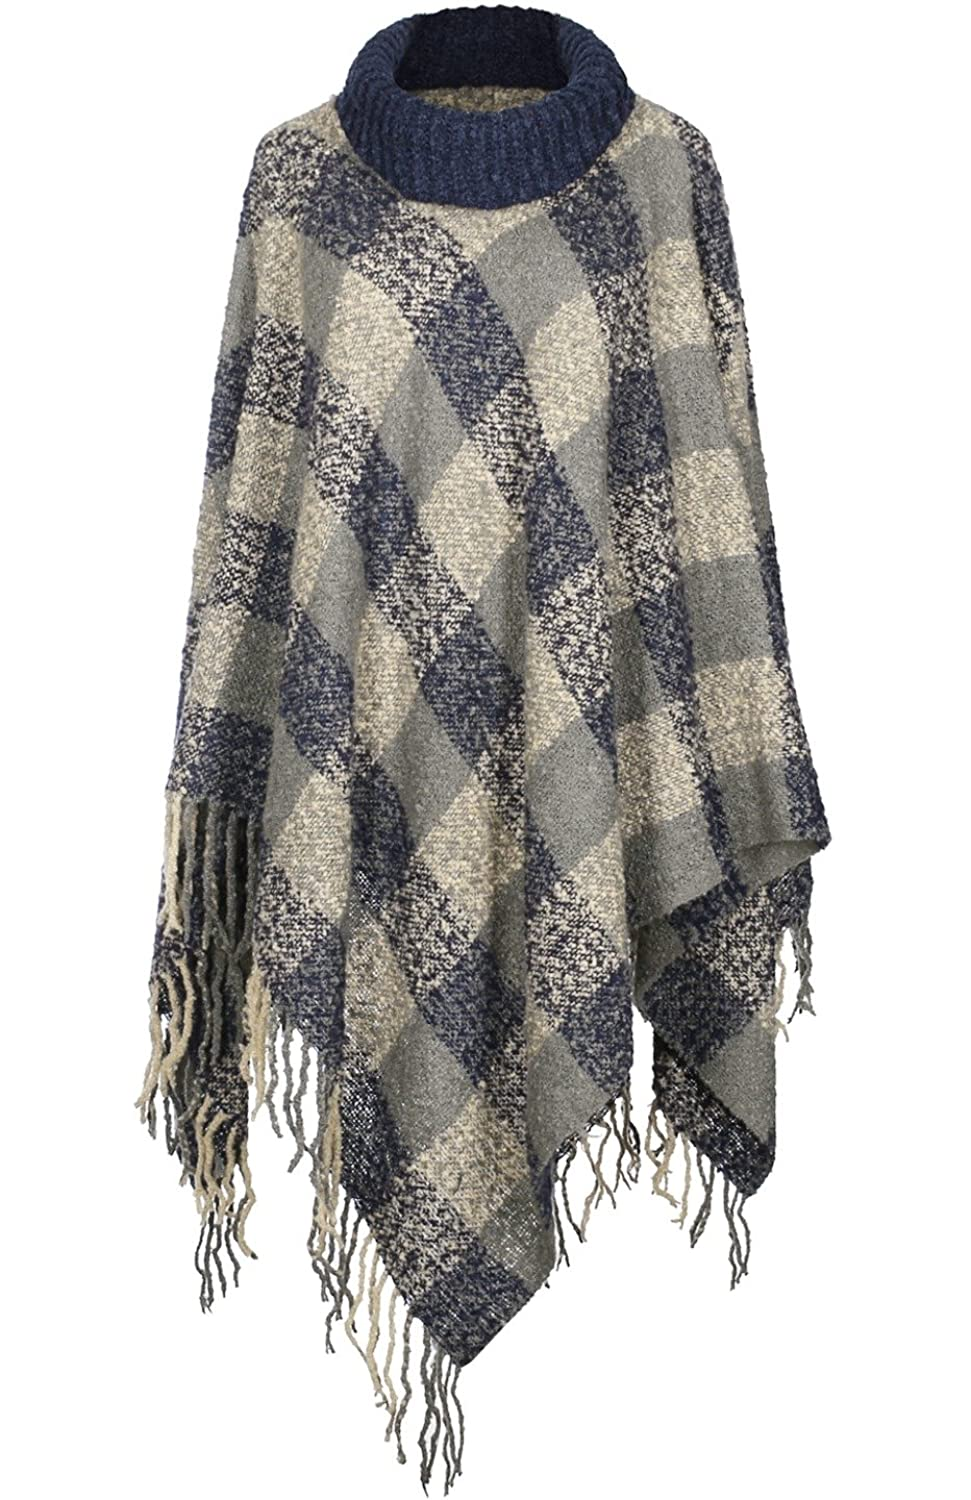 2LUV Women's Pullover Turtleneck Poncho W/ Fringe Trim